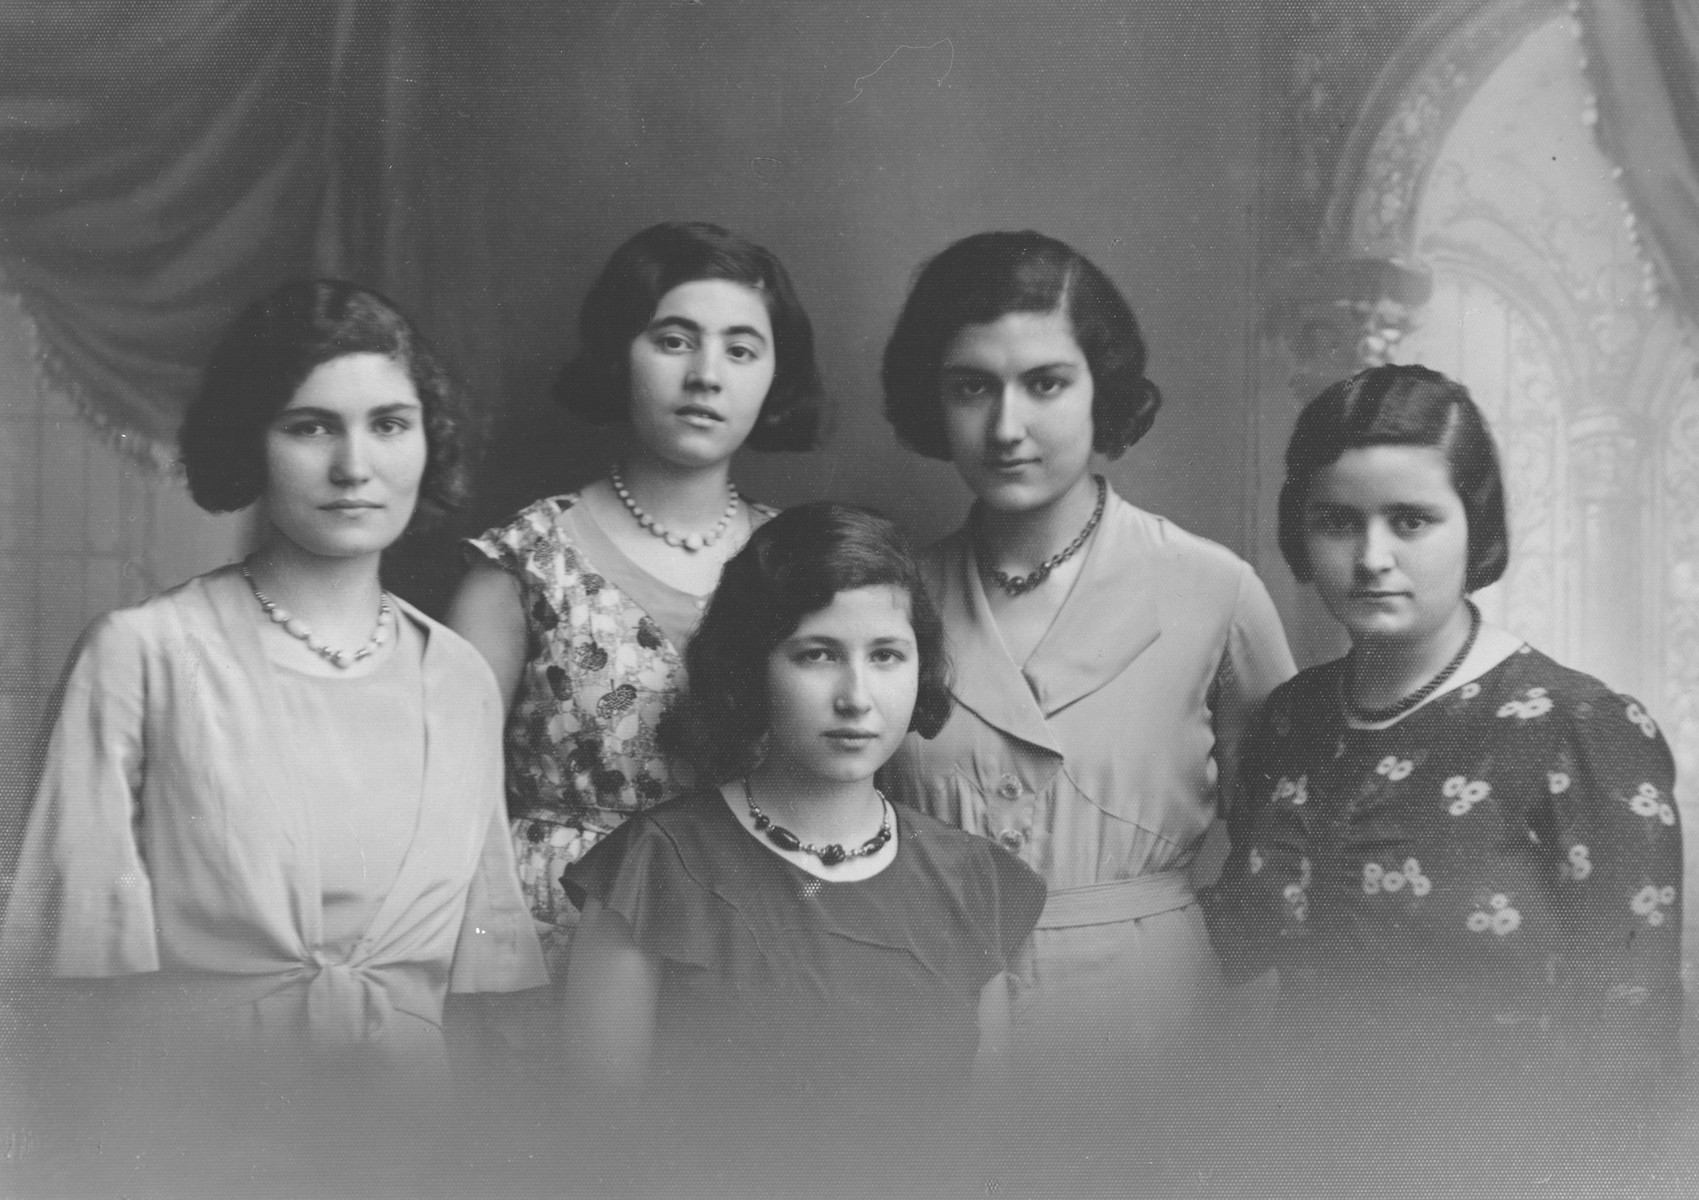 Portrait of five young Albanian women.  Pictured are three sisters and two cousins: Jeannette Matathia (later Levis), Henriette Matathia (later Levis), Fortune Jacoel (perished in Auschwitz), Mathile Matathia (later Sebetai) and Anna Levis (later Osmos).